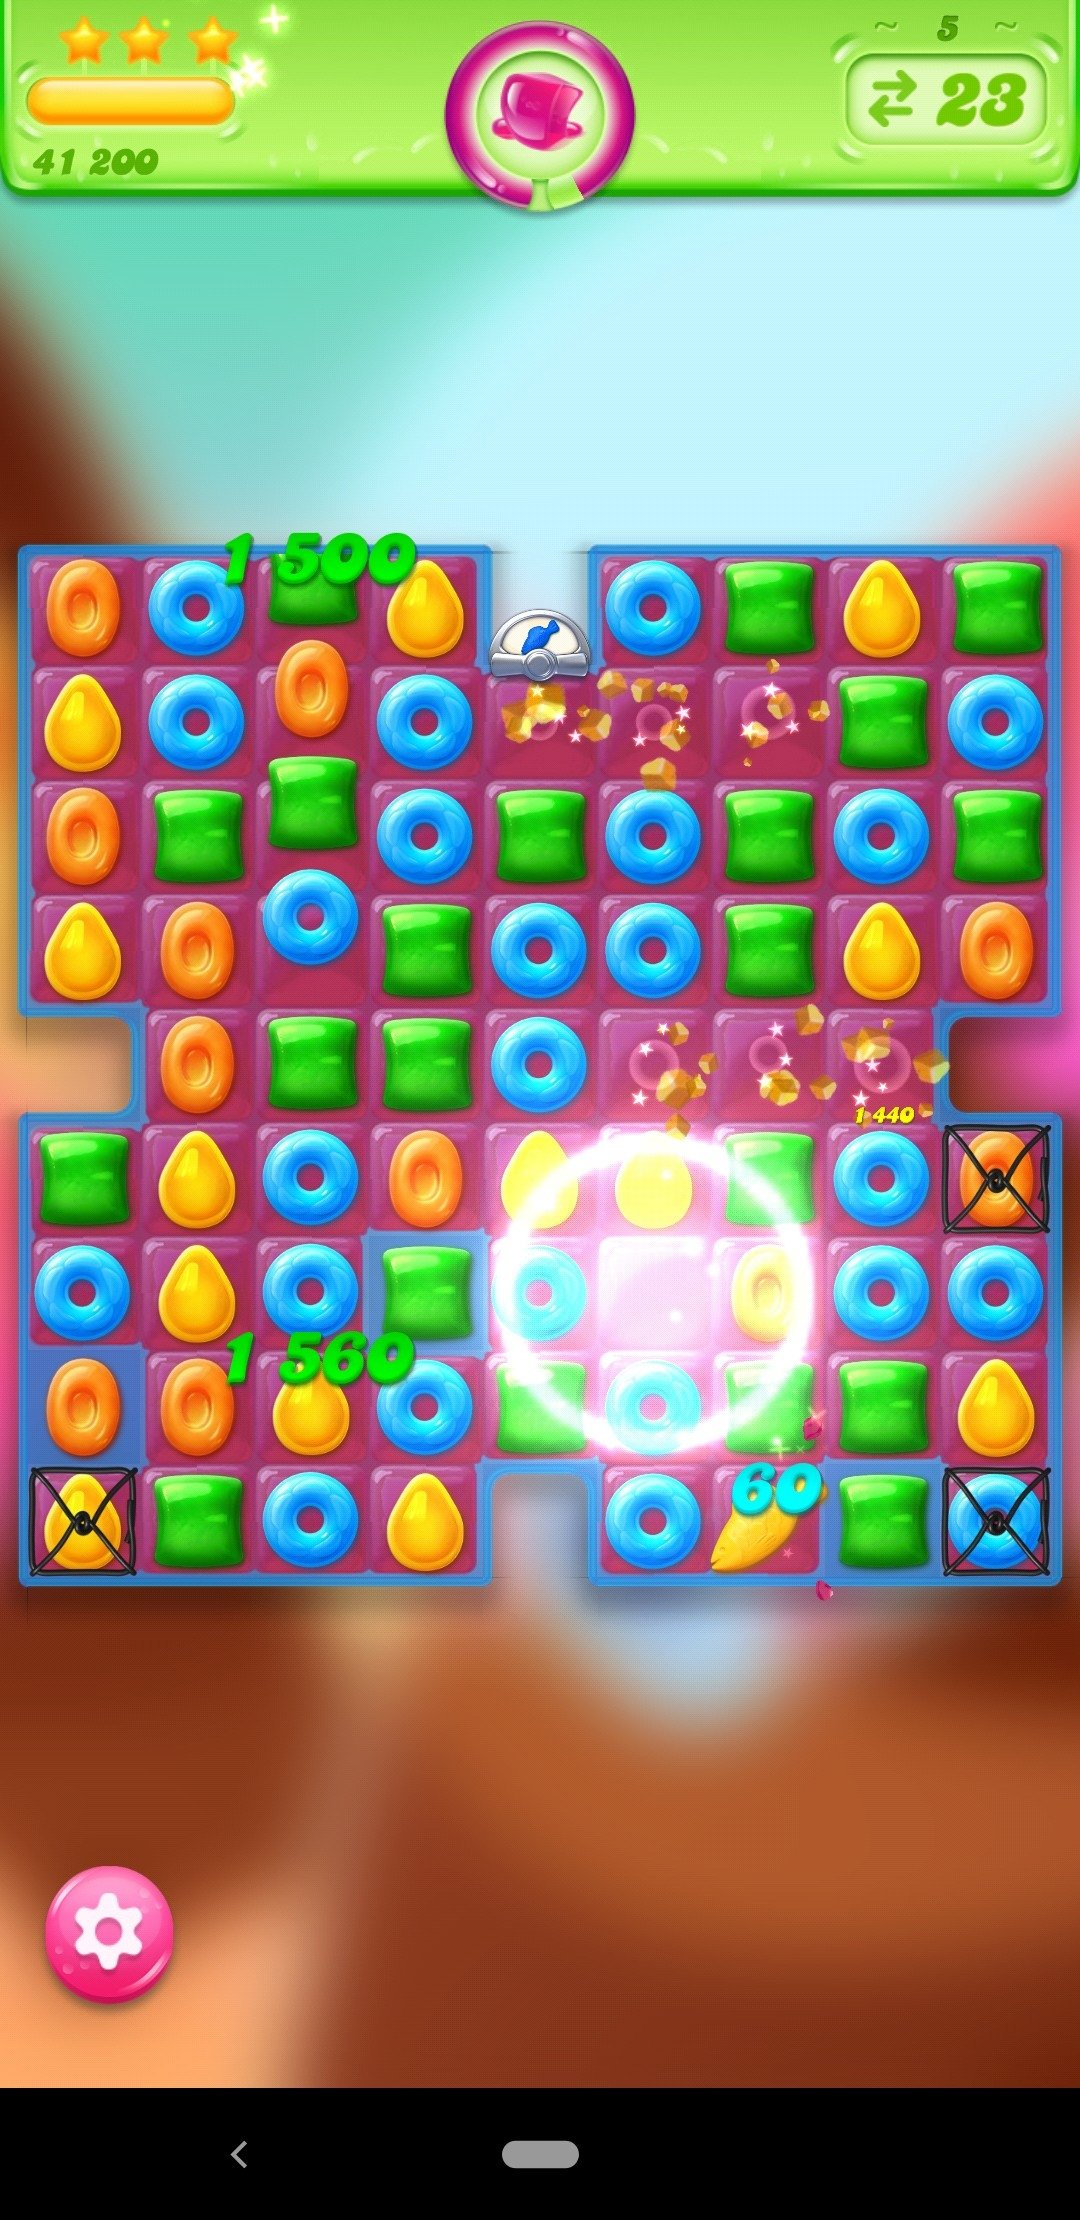 Download Candy Crush Jelly Saga 1.56.6 Android - Free